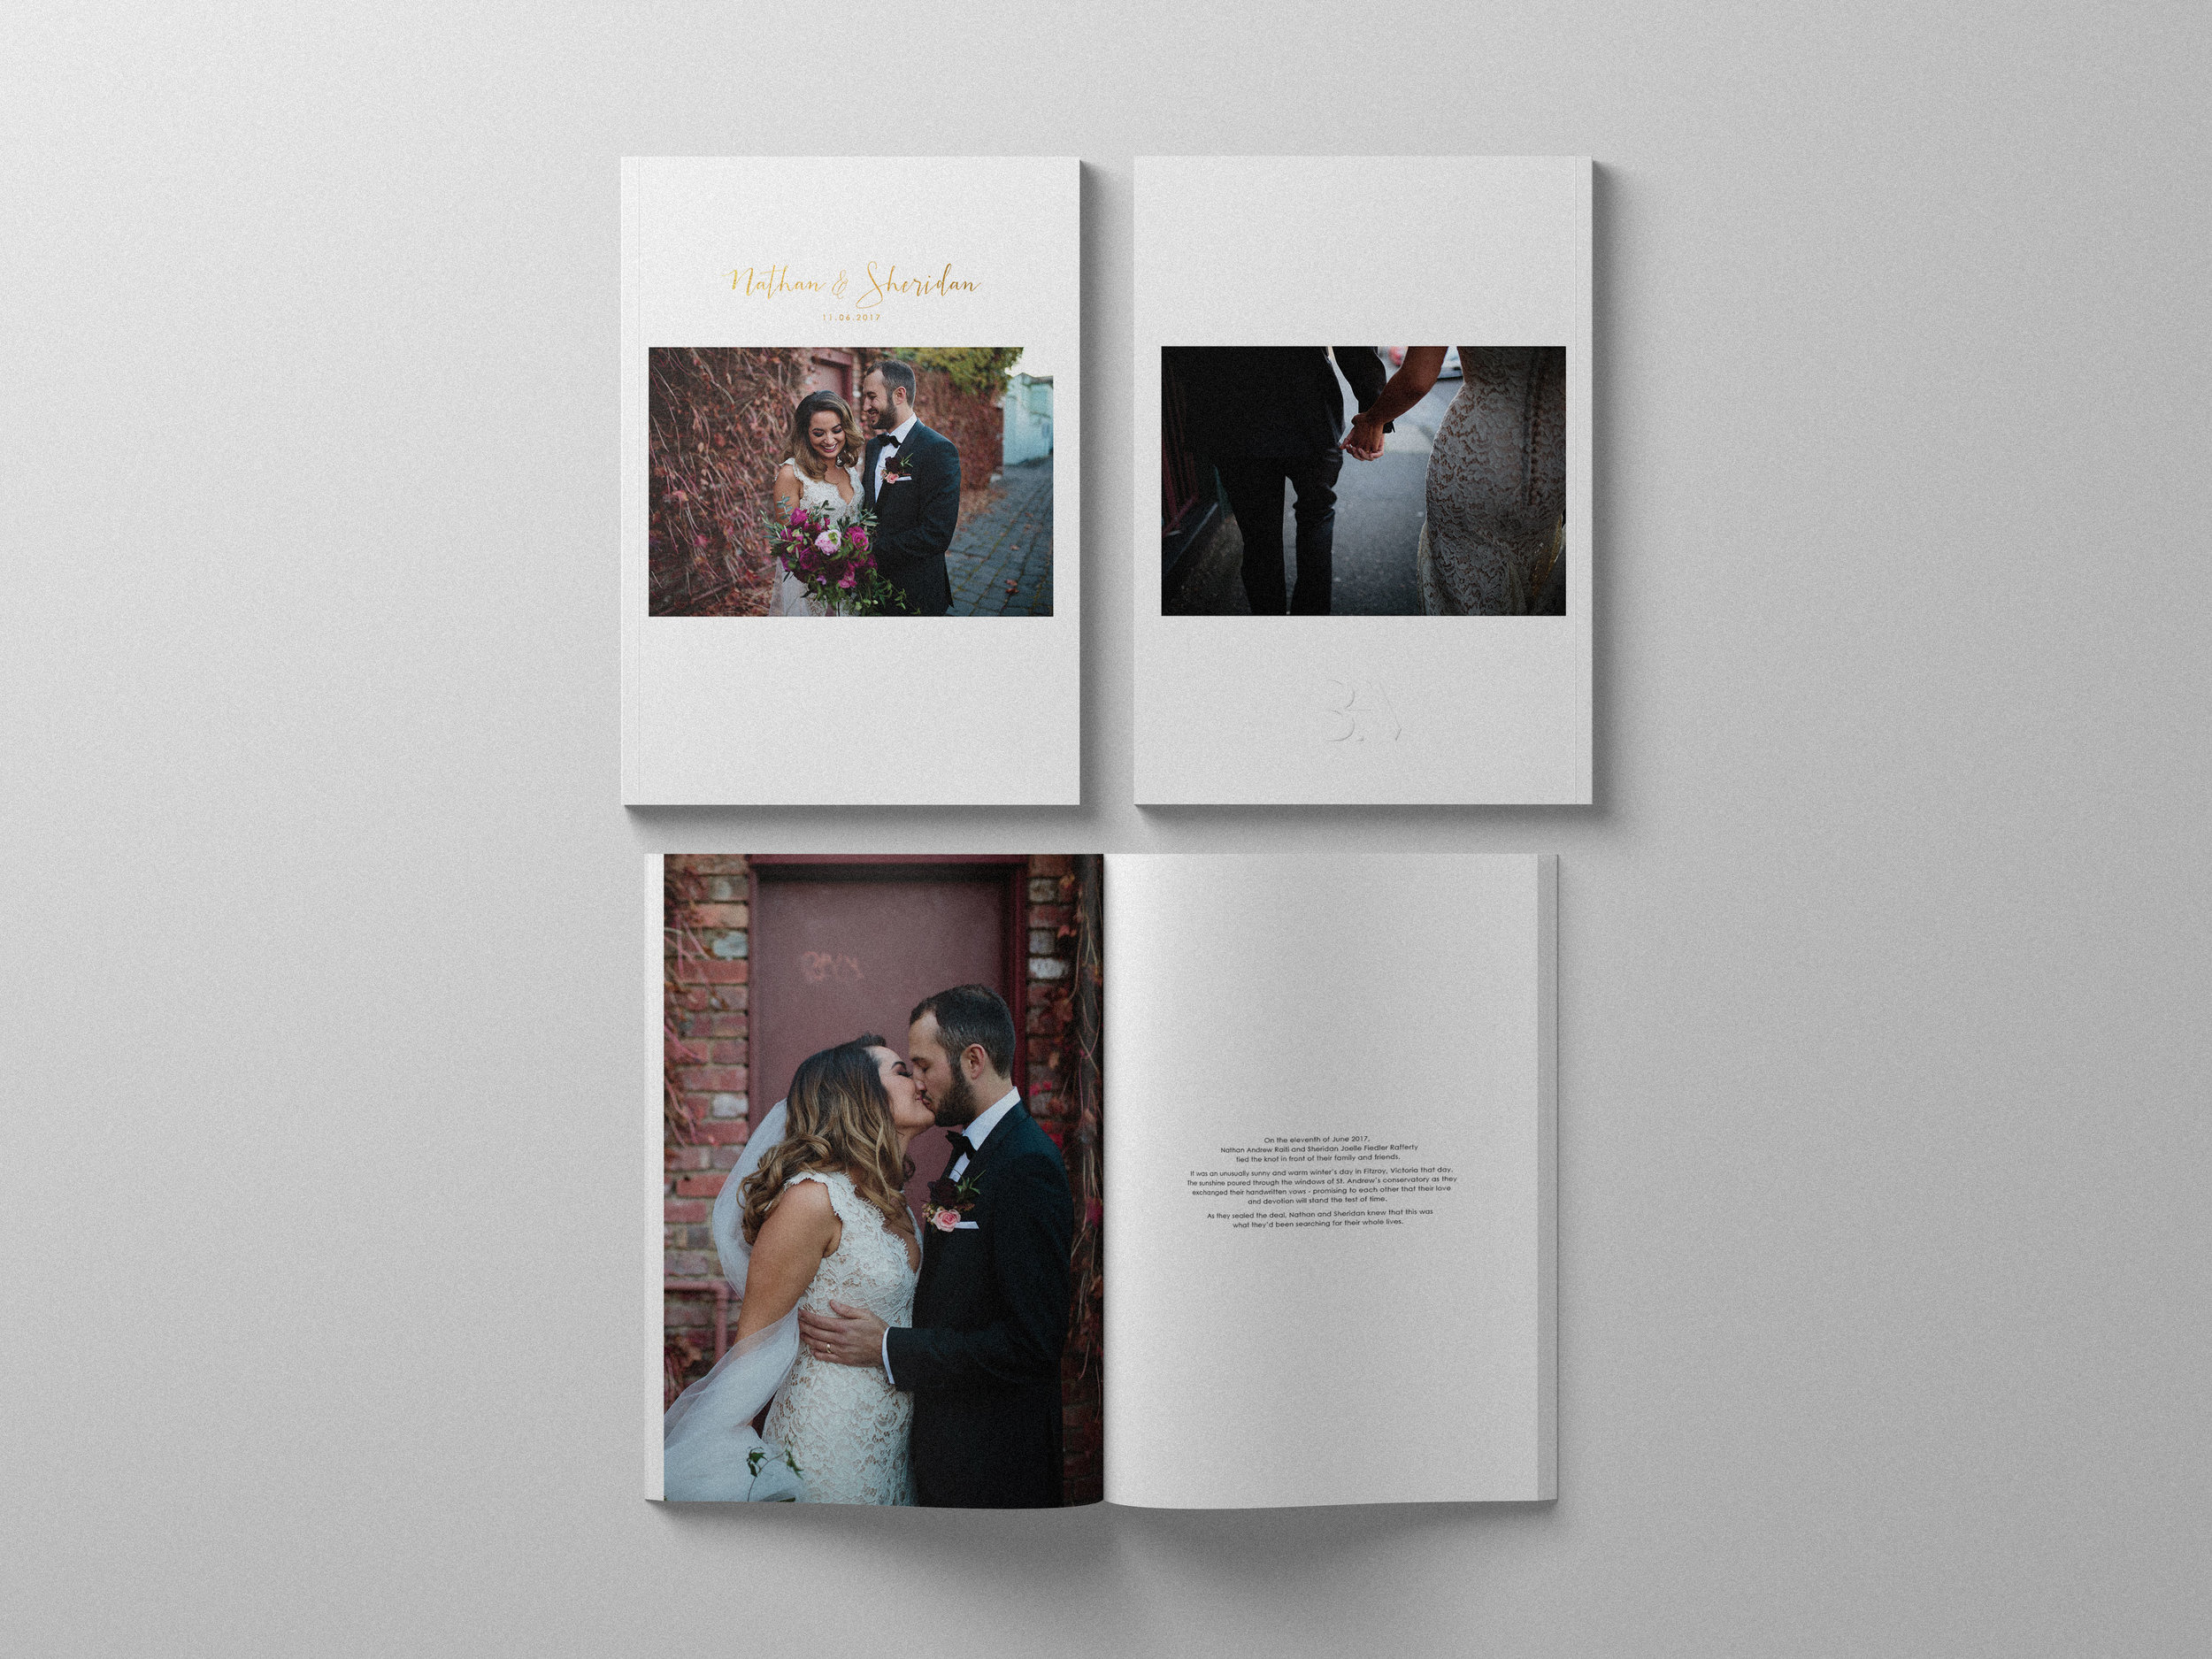 Sheridan-Nathan-Wedding-Zine-Layout.jpg